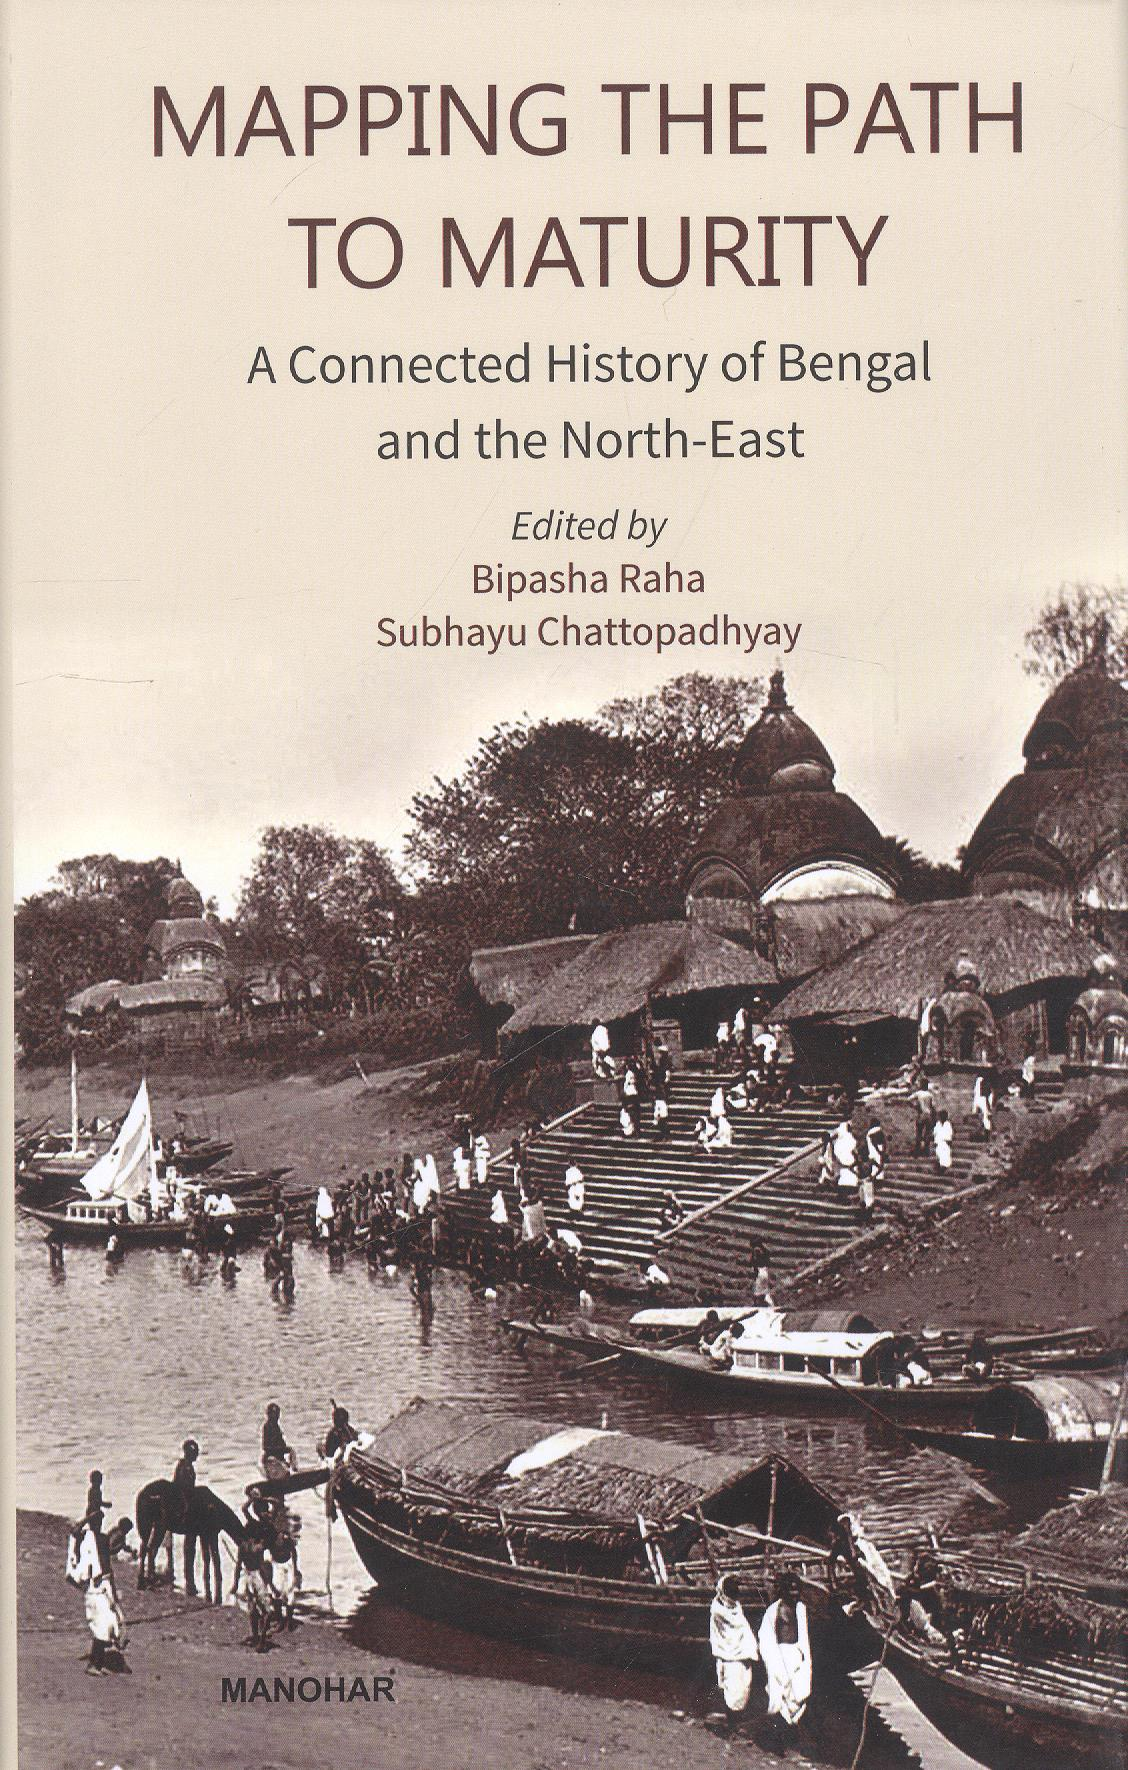 Mapping The Path To Maturity: A Connected History of Bengal and the North-East